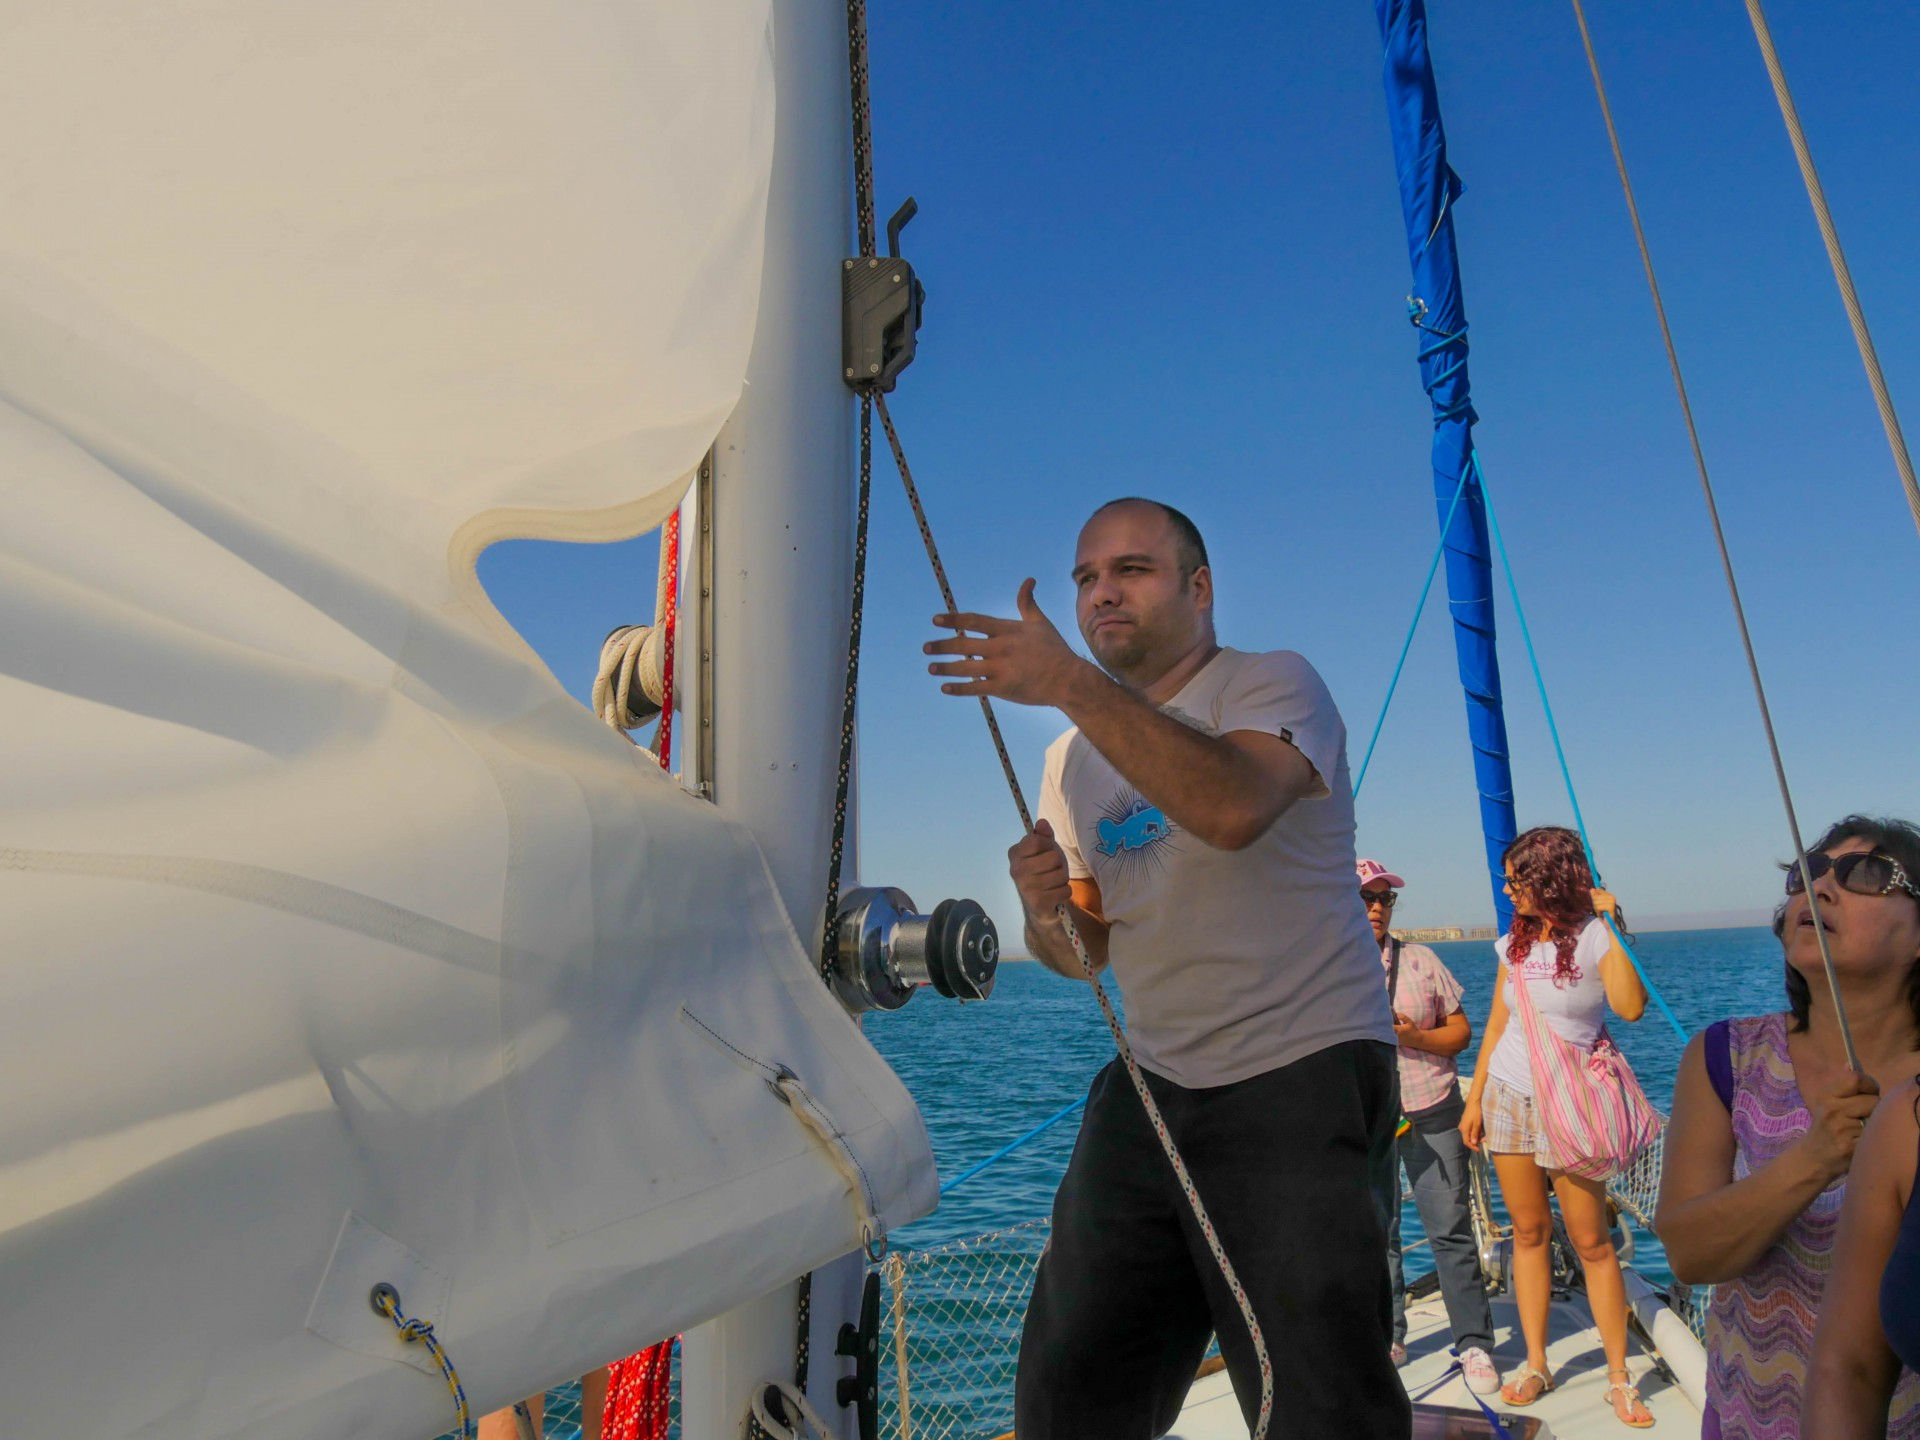 Alfonso hoists the sail.